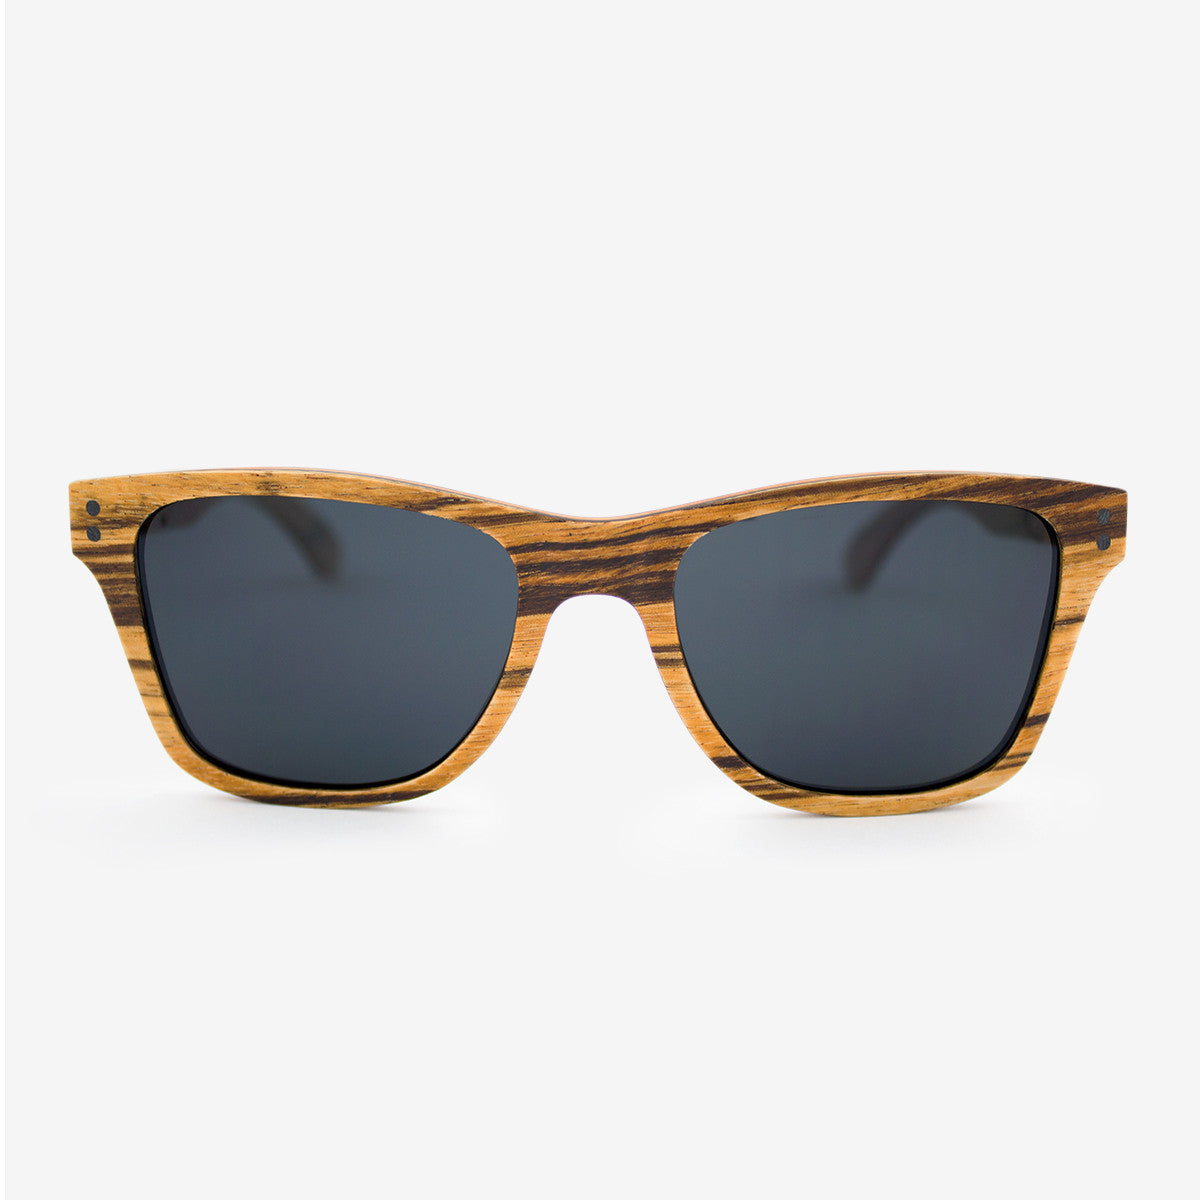 Delray Zebrawood adjustable wood sunglasses